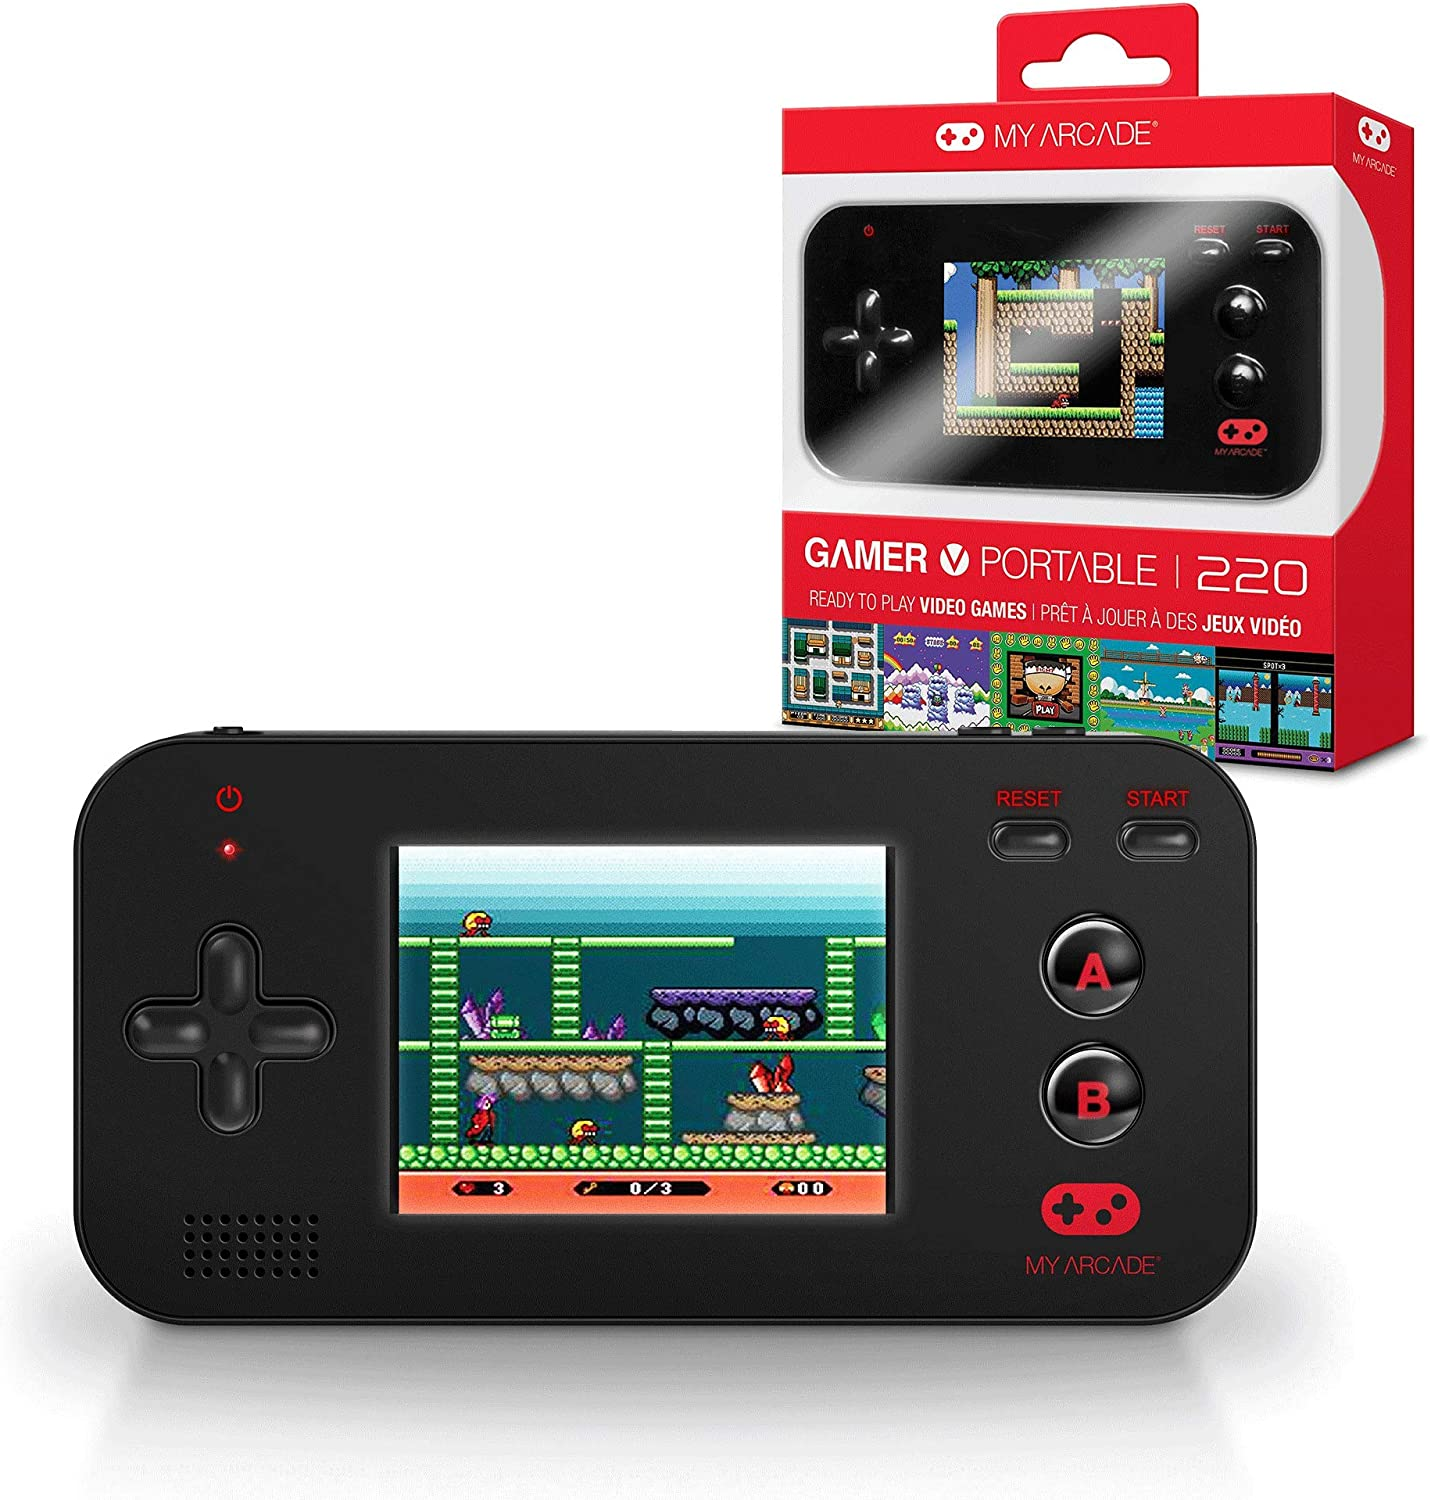 Amazon Com My Arcade Gamer V Portable Handheld Gaming System 220 Retro Style Games Lightweight Compact Size Battery Powered Full Color Display Black Electronic Games Toys Games